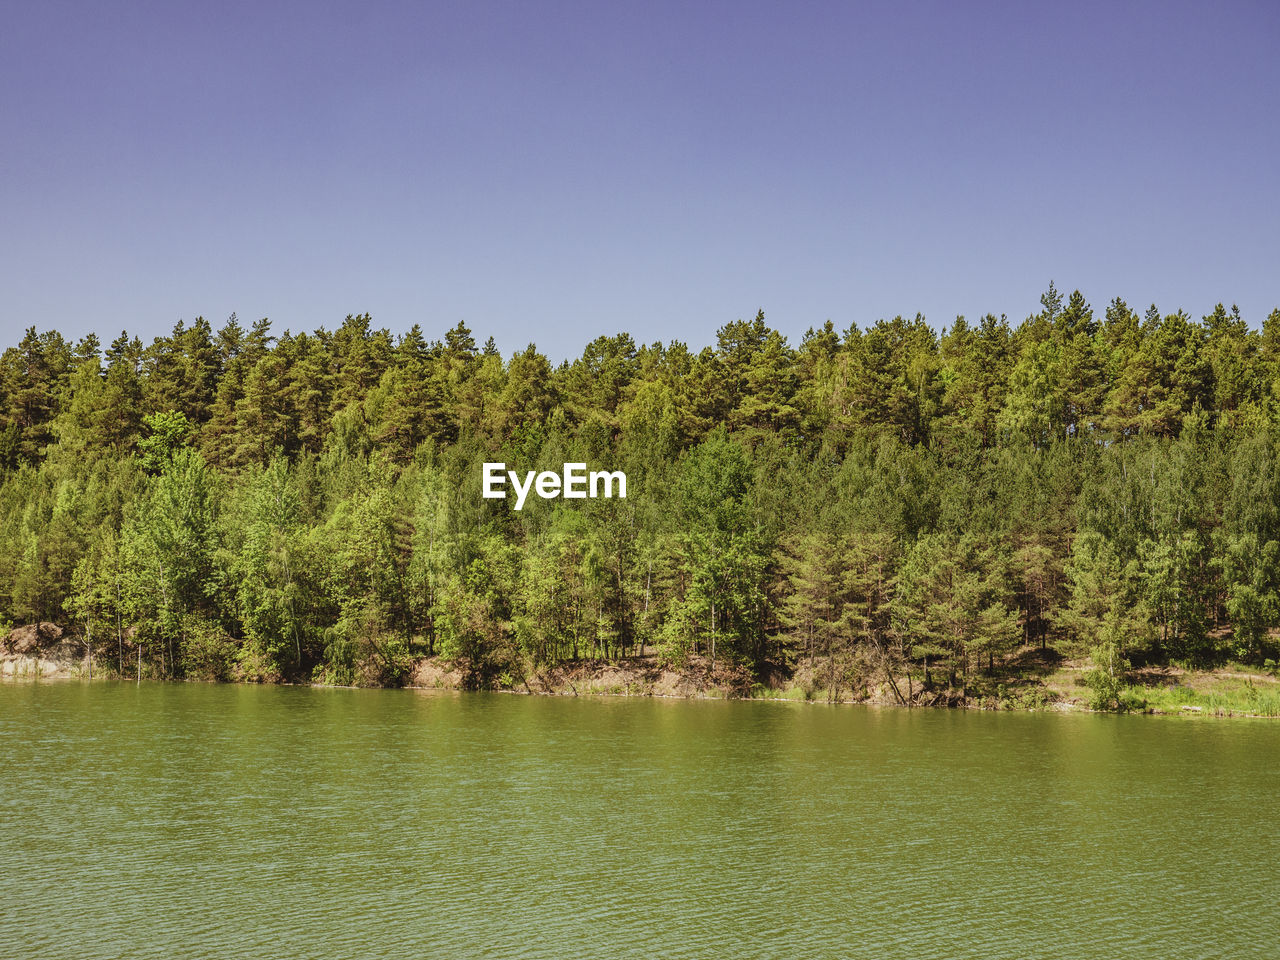 tree, plant, water, beauty in nature, tranquility, tranquil scene, waterfront, scenics - nature, growth, green color, lake, sky, non-urban scene, no people, day, nature, clear sky, land, forest, outdoors